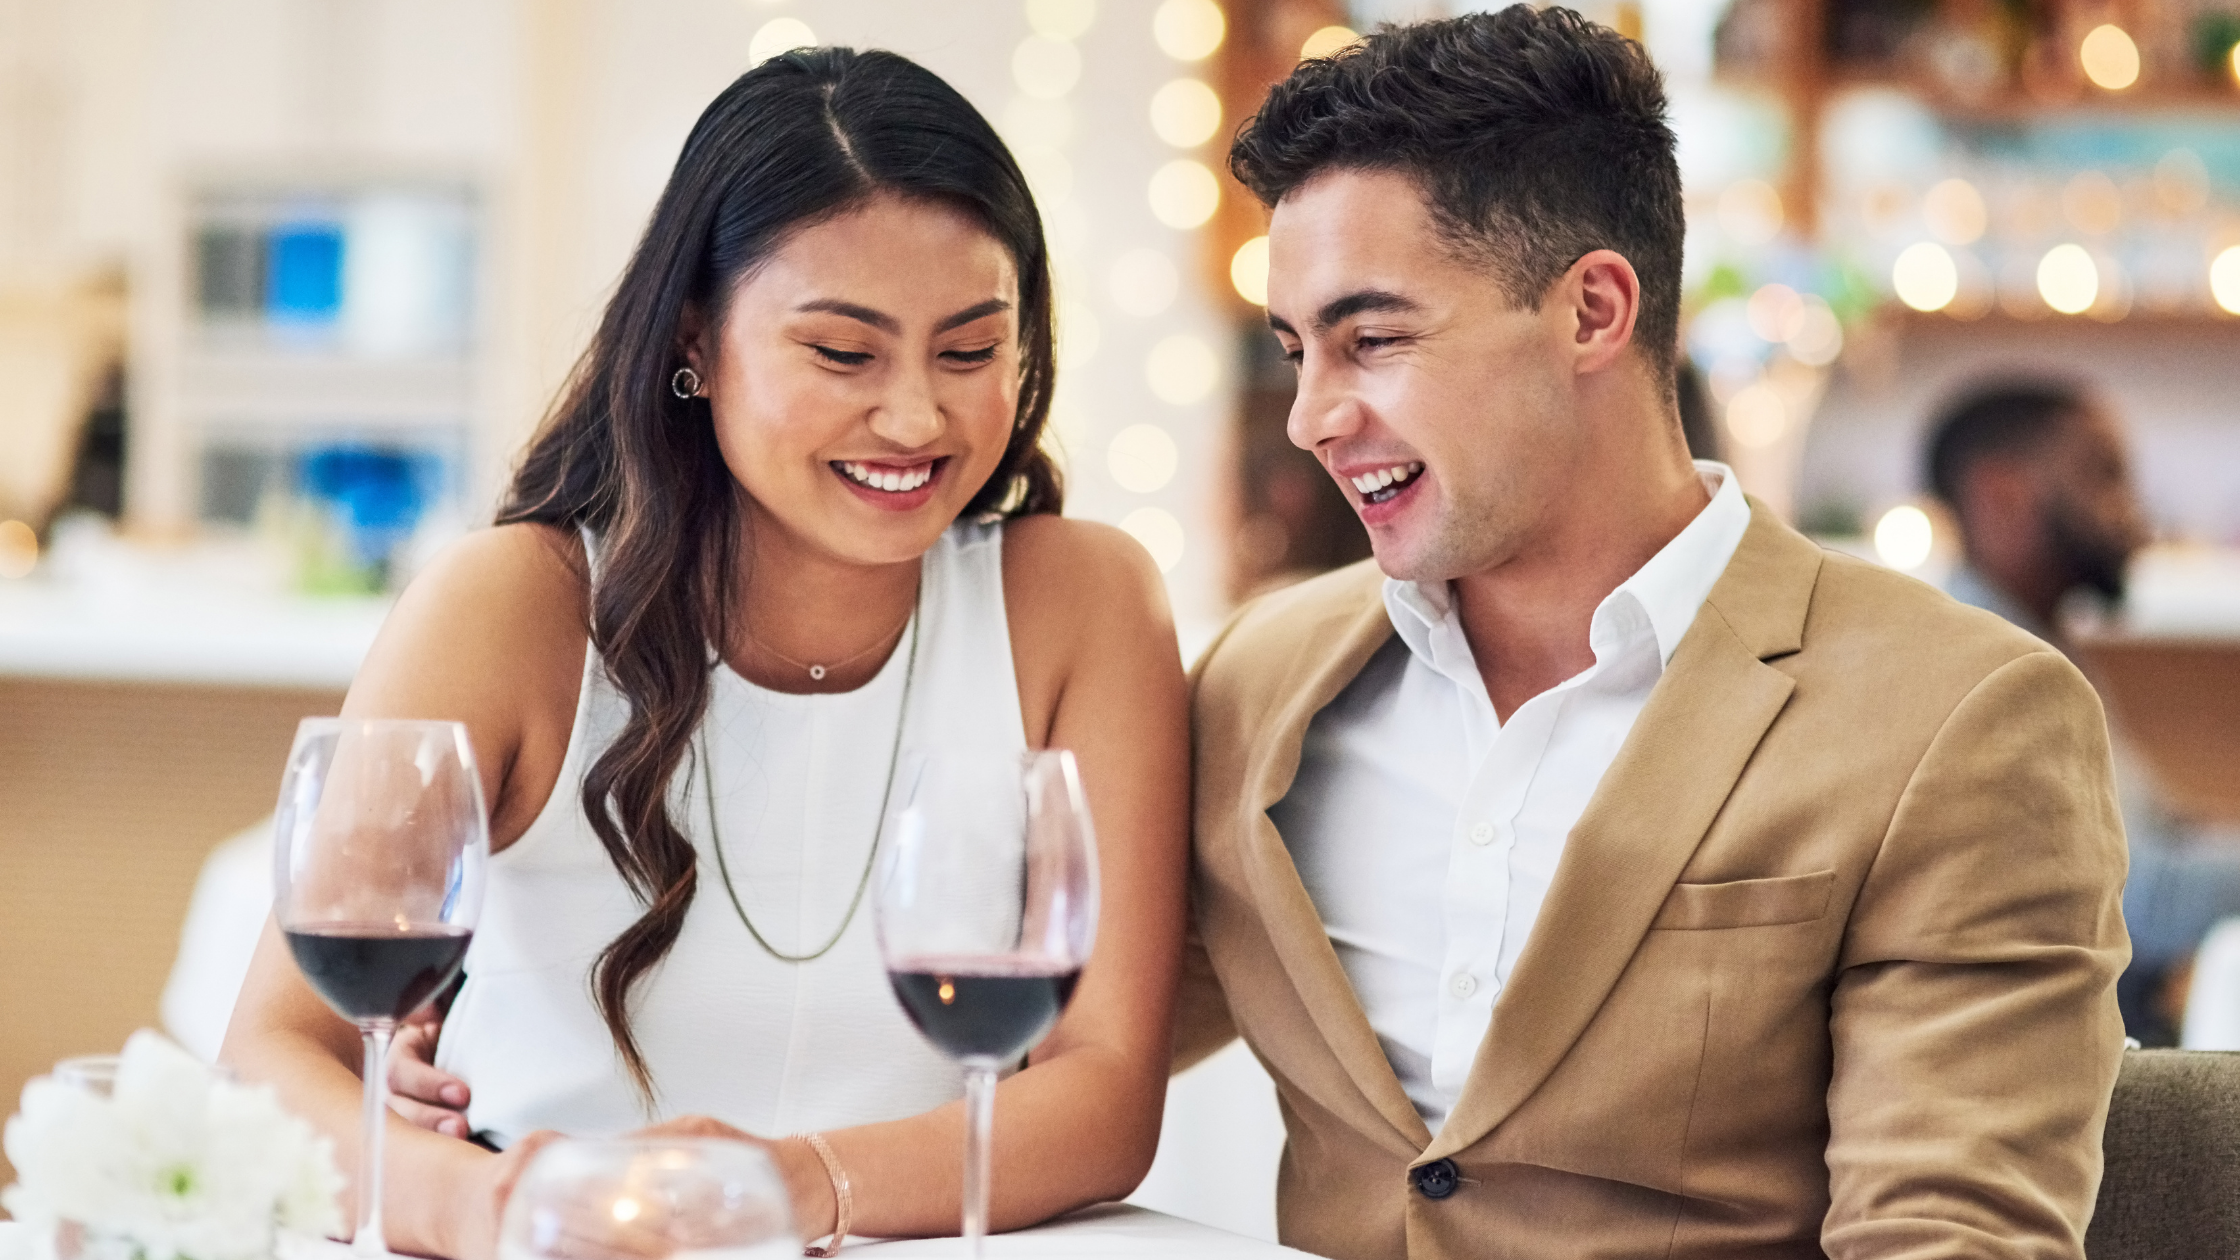 5 Jewelry Styling Tips For Your Date